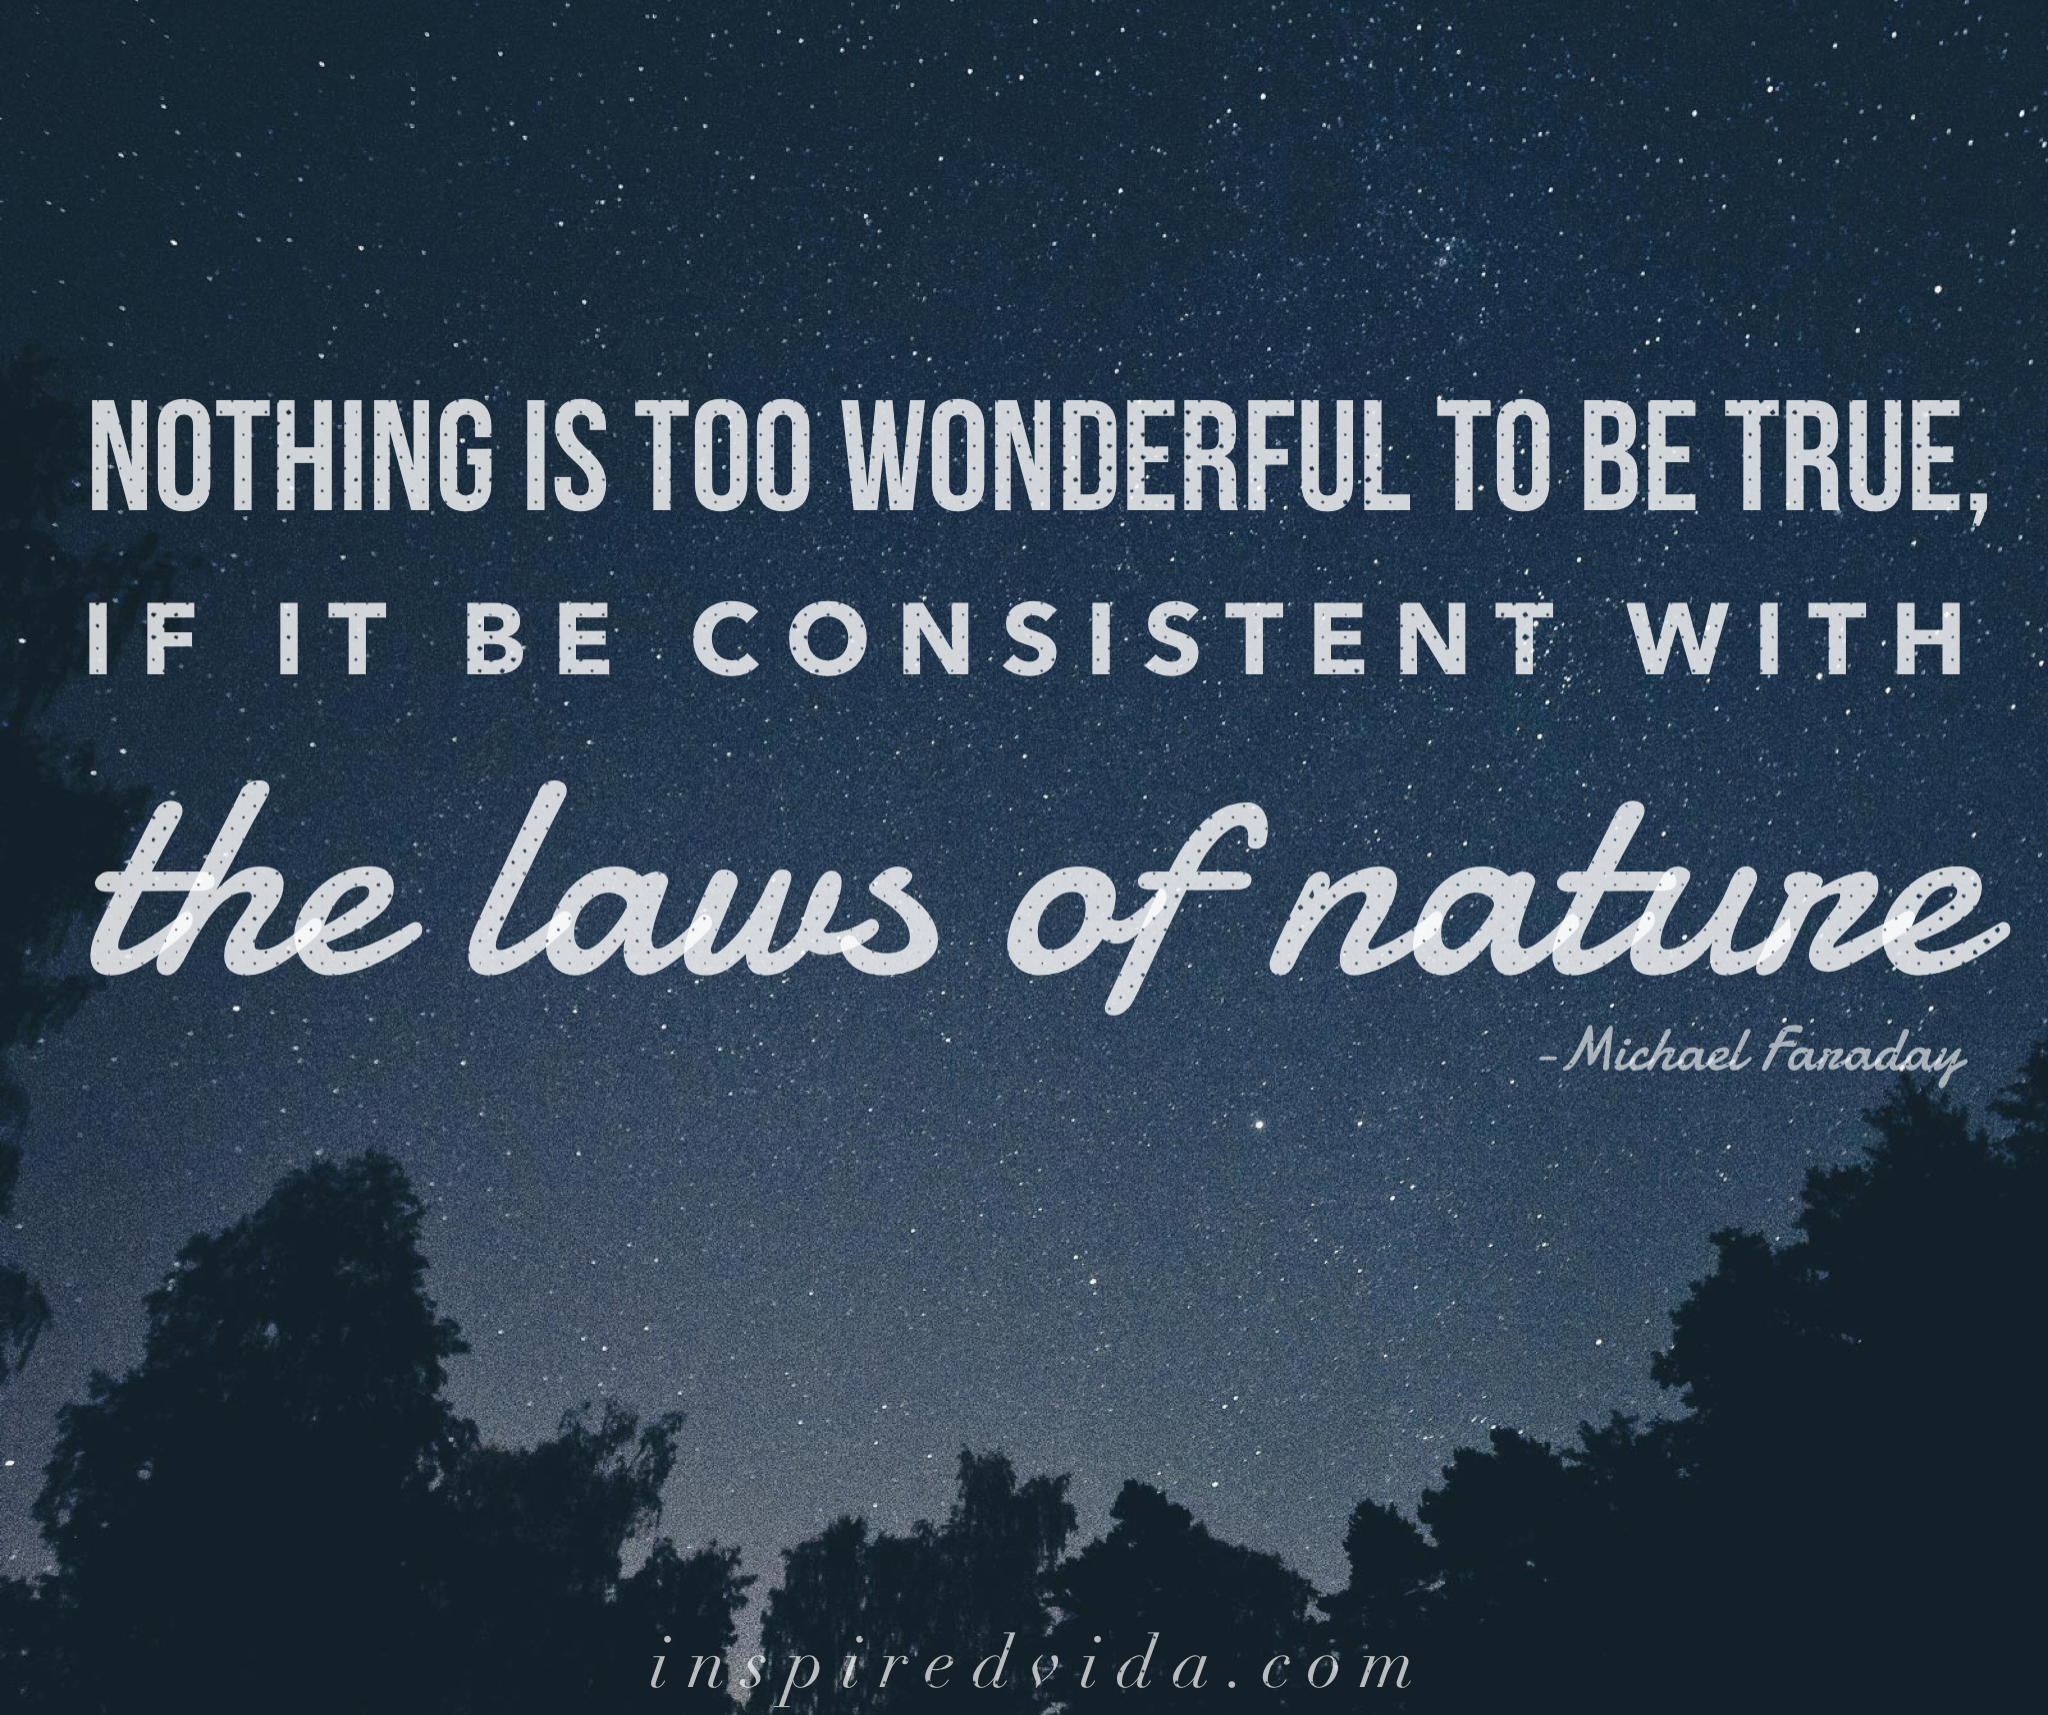 law of nature quote.PNG